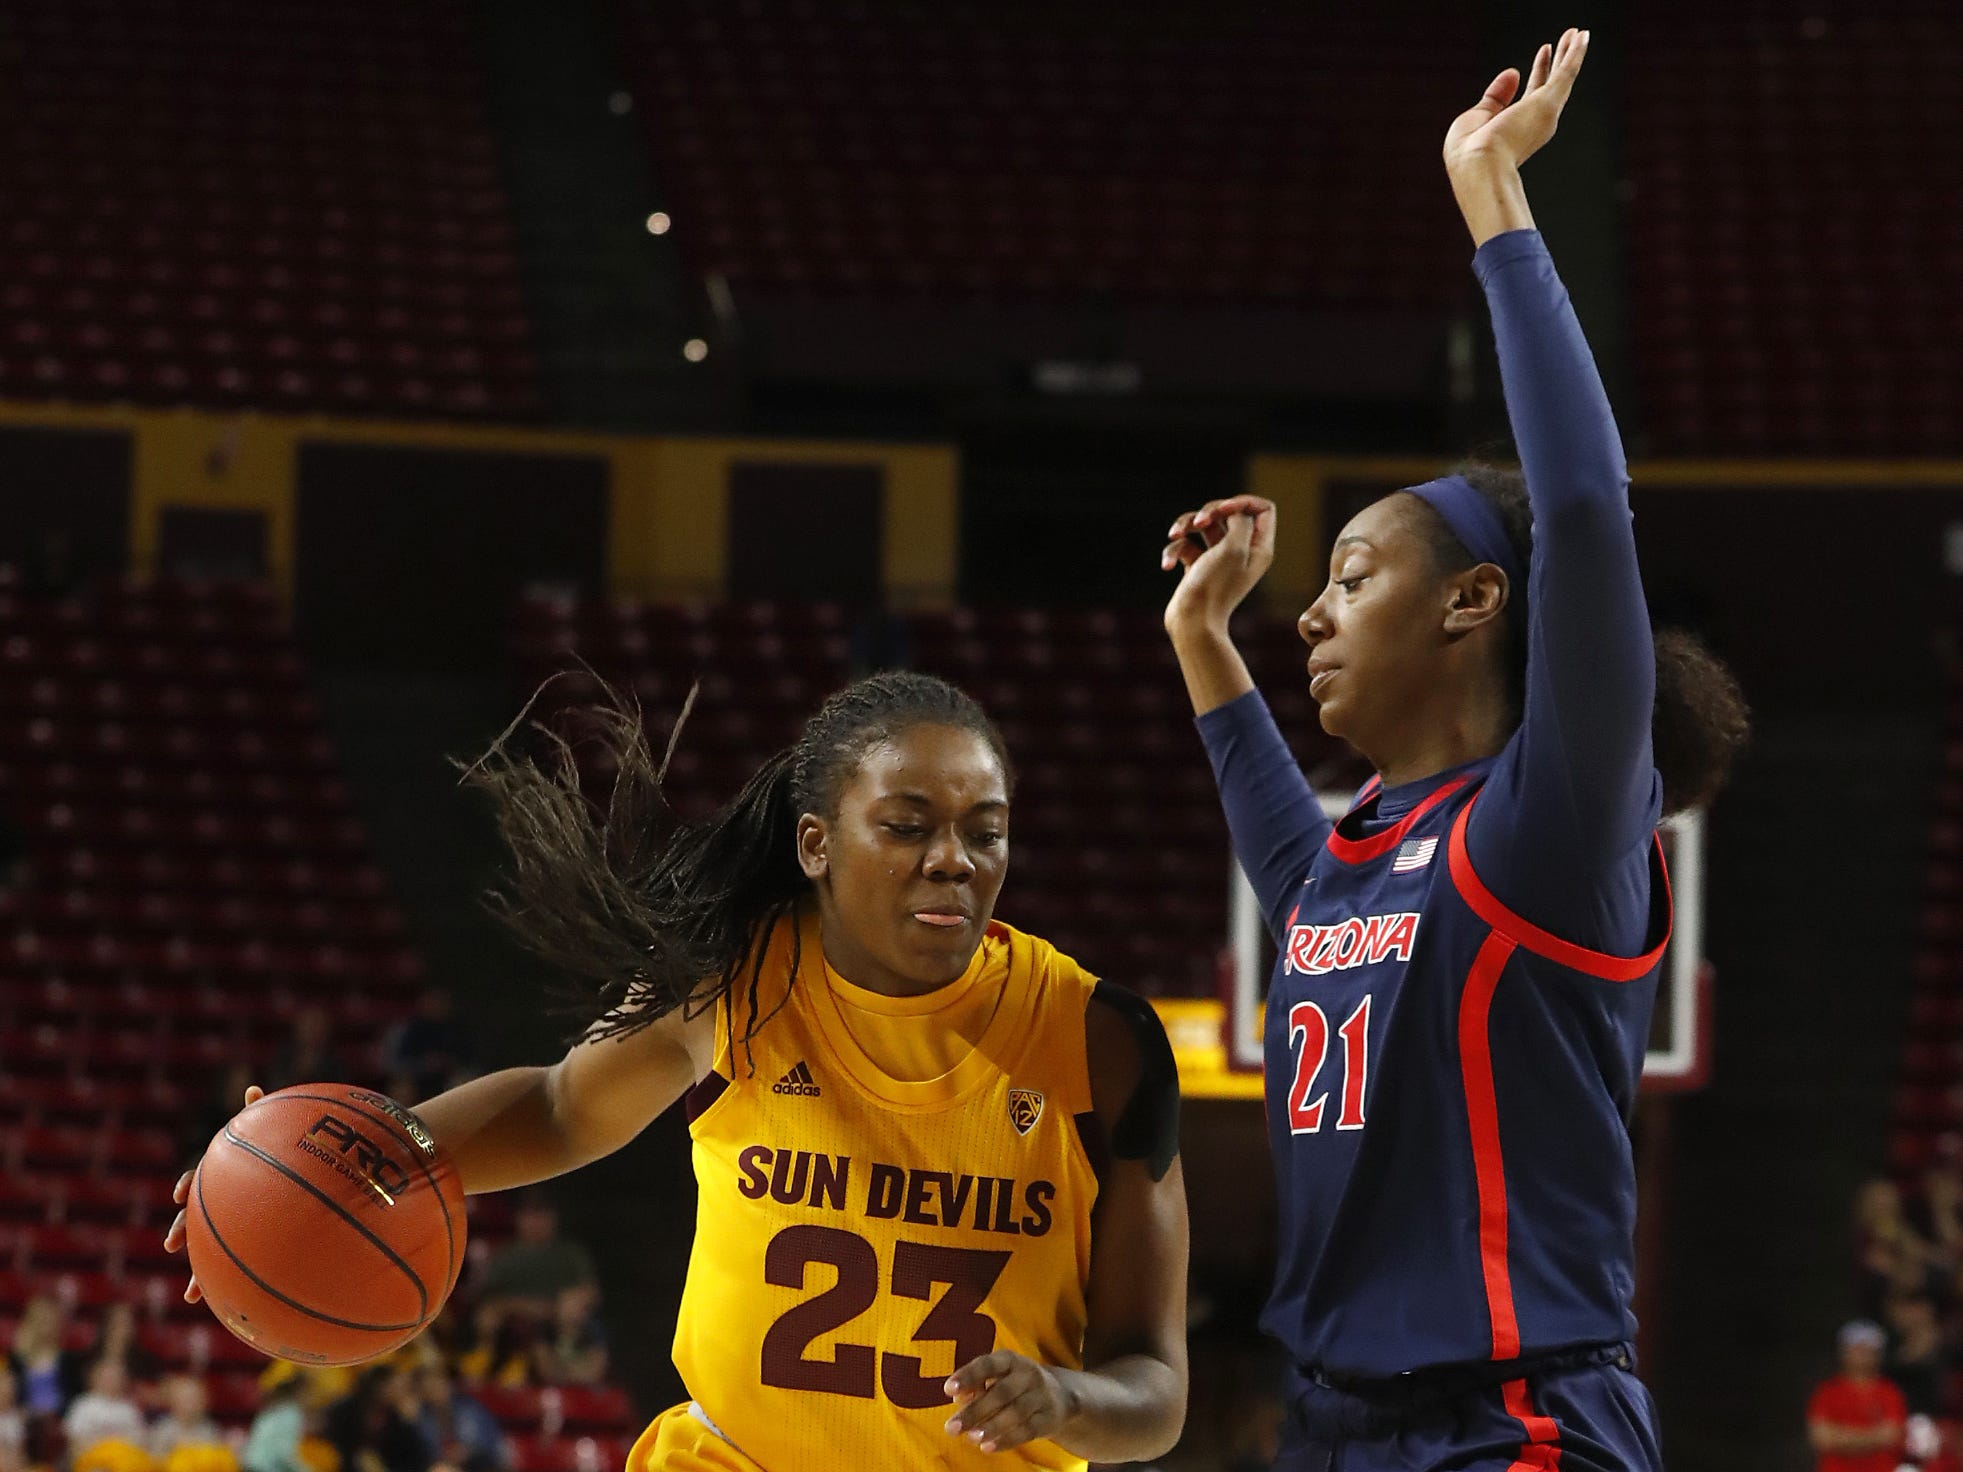 ASU's Iris Mbulito (23) drives the lane against Arizona's Destiny Graham (21) during the first half at Wells Fargo Arena in Tempe, Ariz. on February 1, 2019.